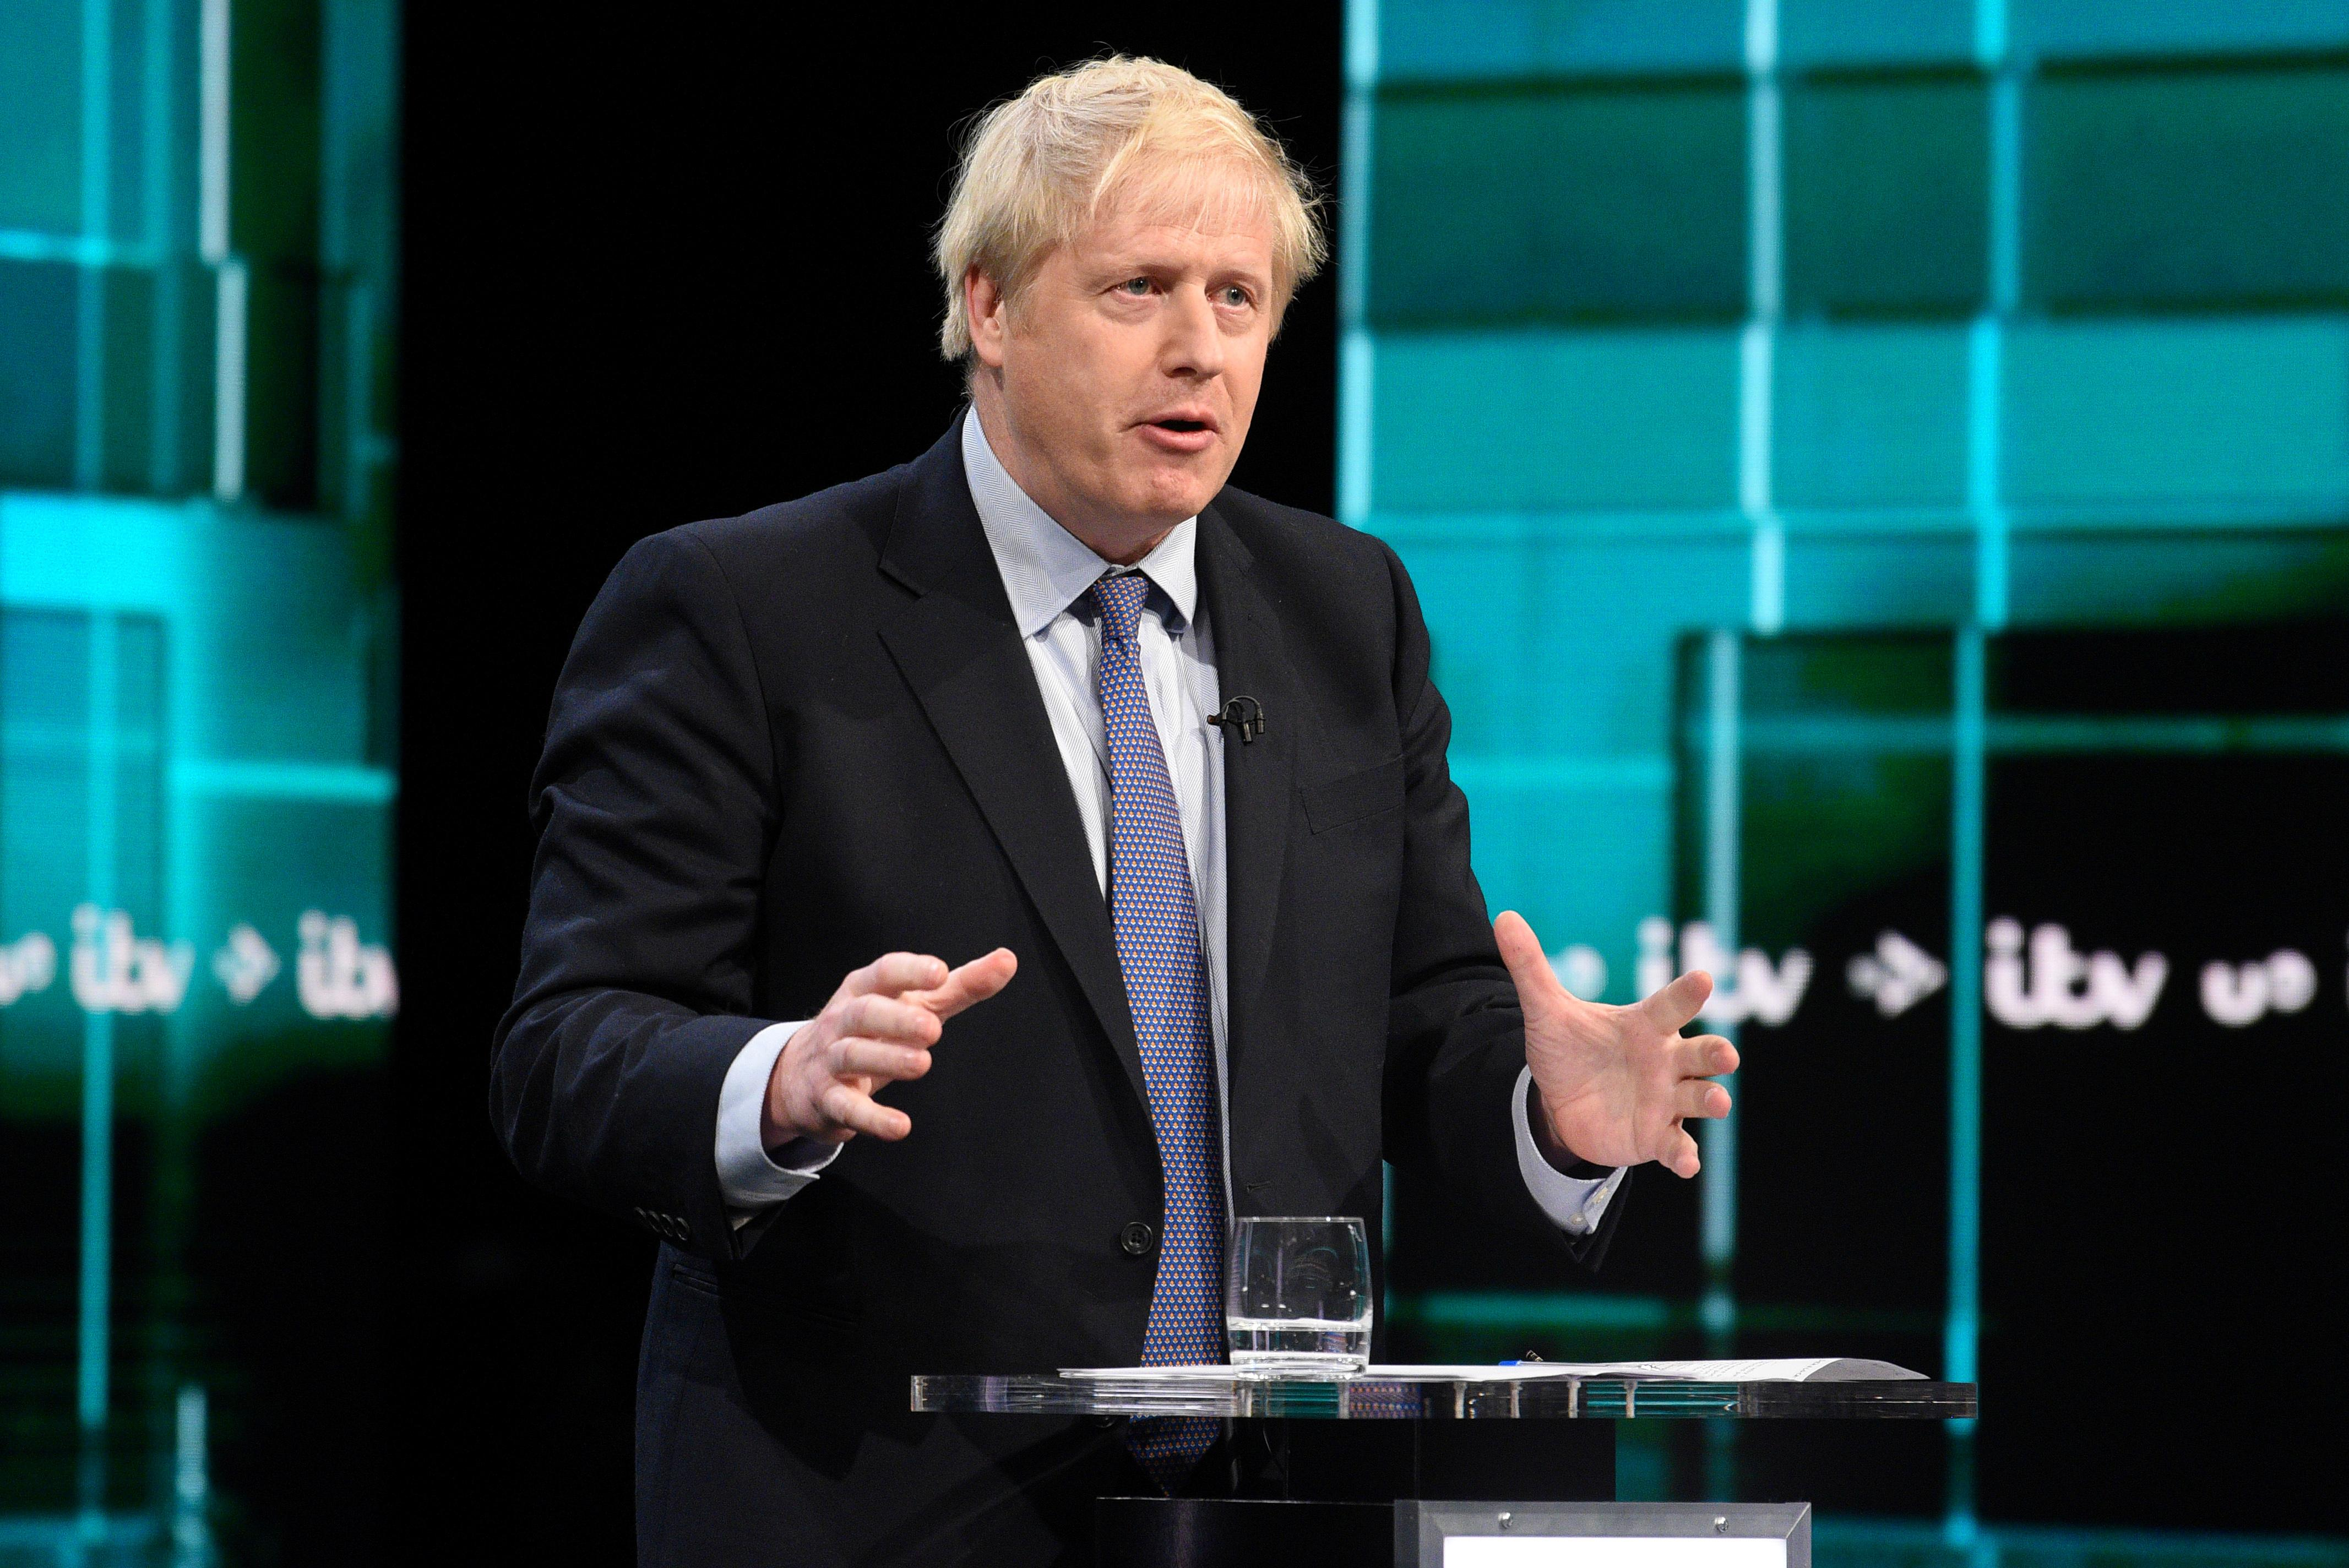 UK PM Johnson questions BBC's license fee funding